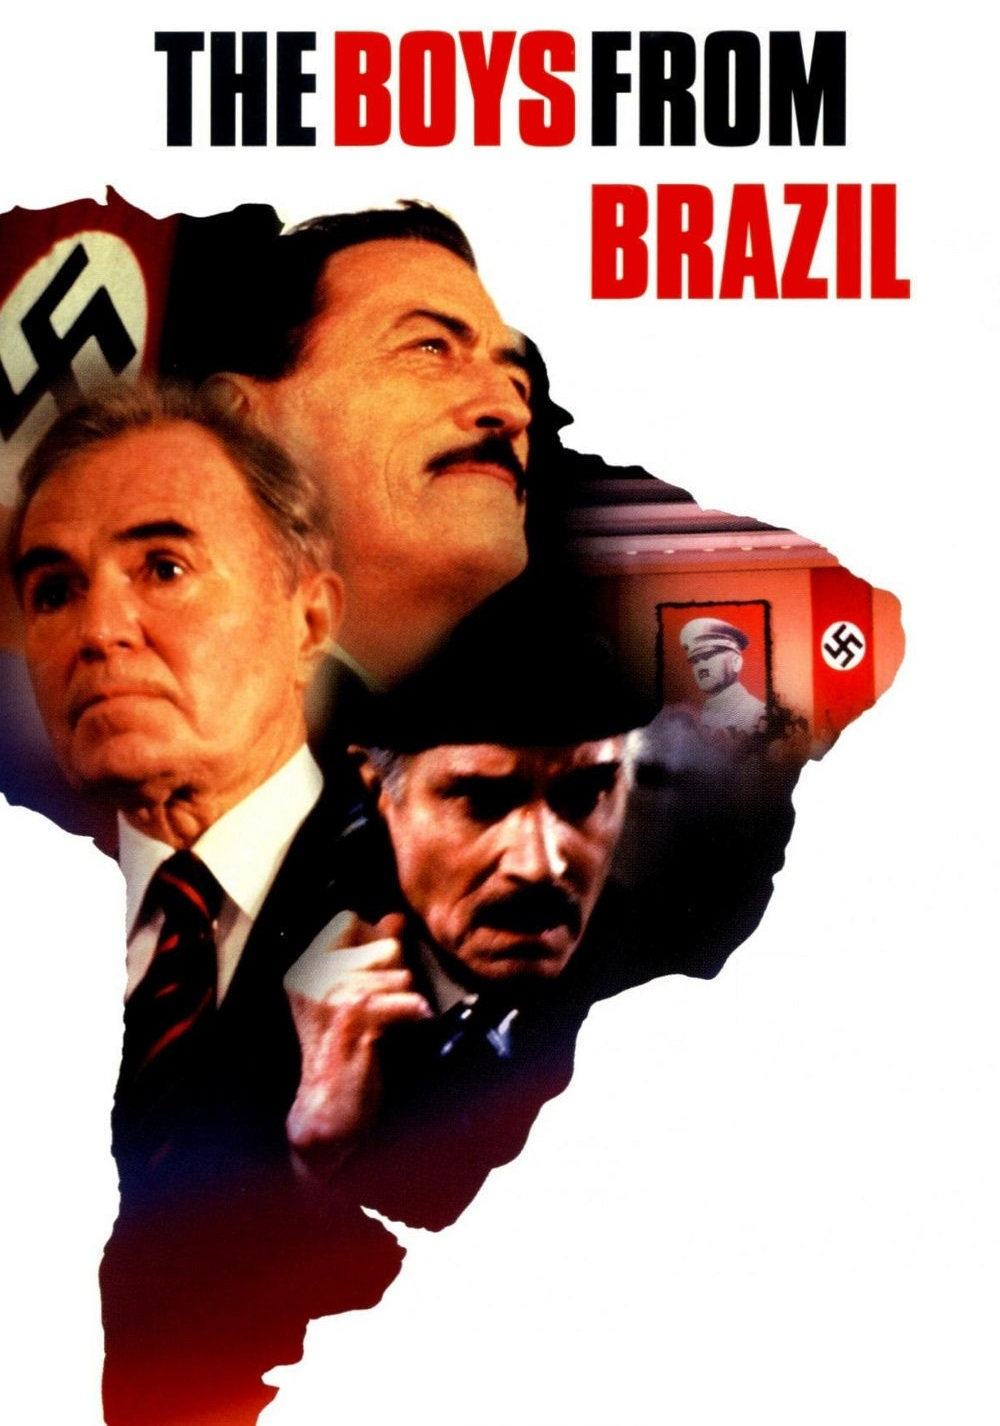 The.Boys.from.Brazil.1978.German.AC3.DL.1080p.BluRay.x265-FuN